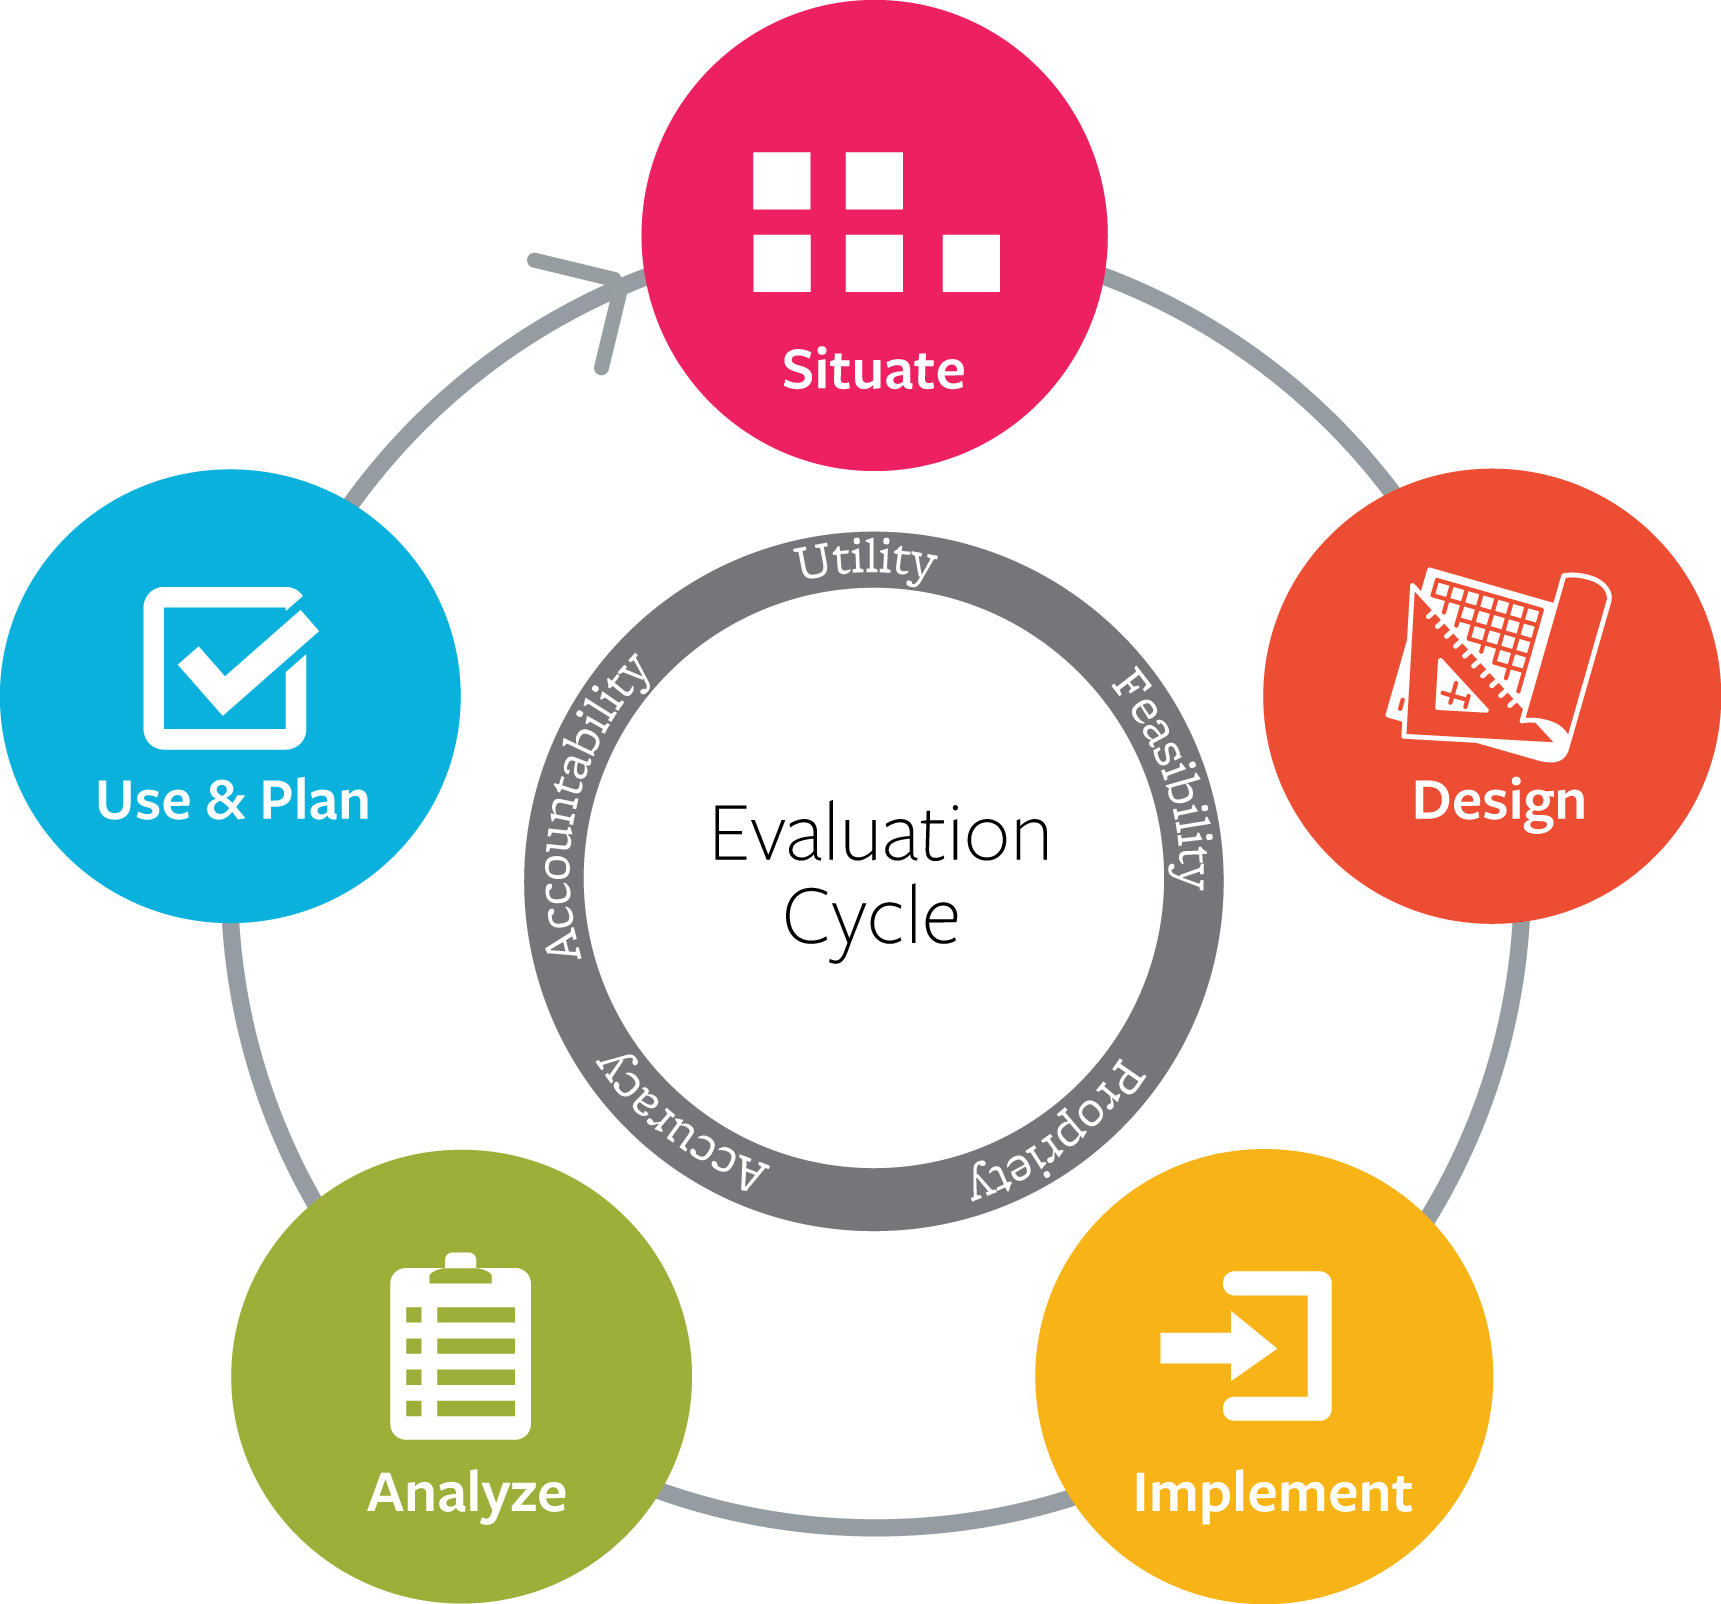 program evaluation The program (or project) evaluation and review technique (pert) is a statistical tool used in project management, which was designed to analyze and represent the tasks involved in completing a given project.